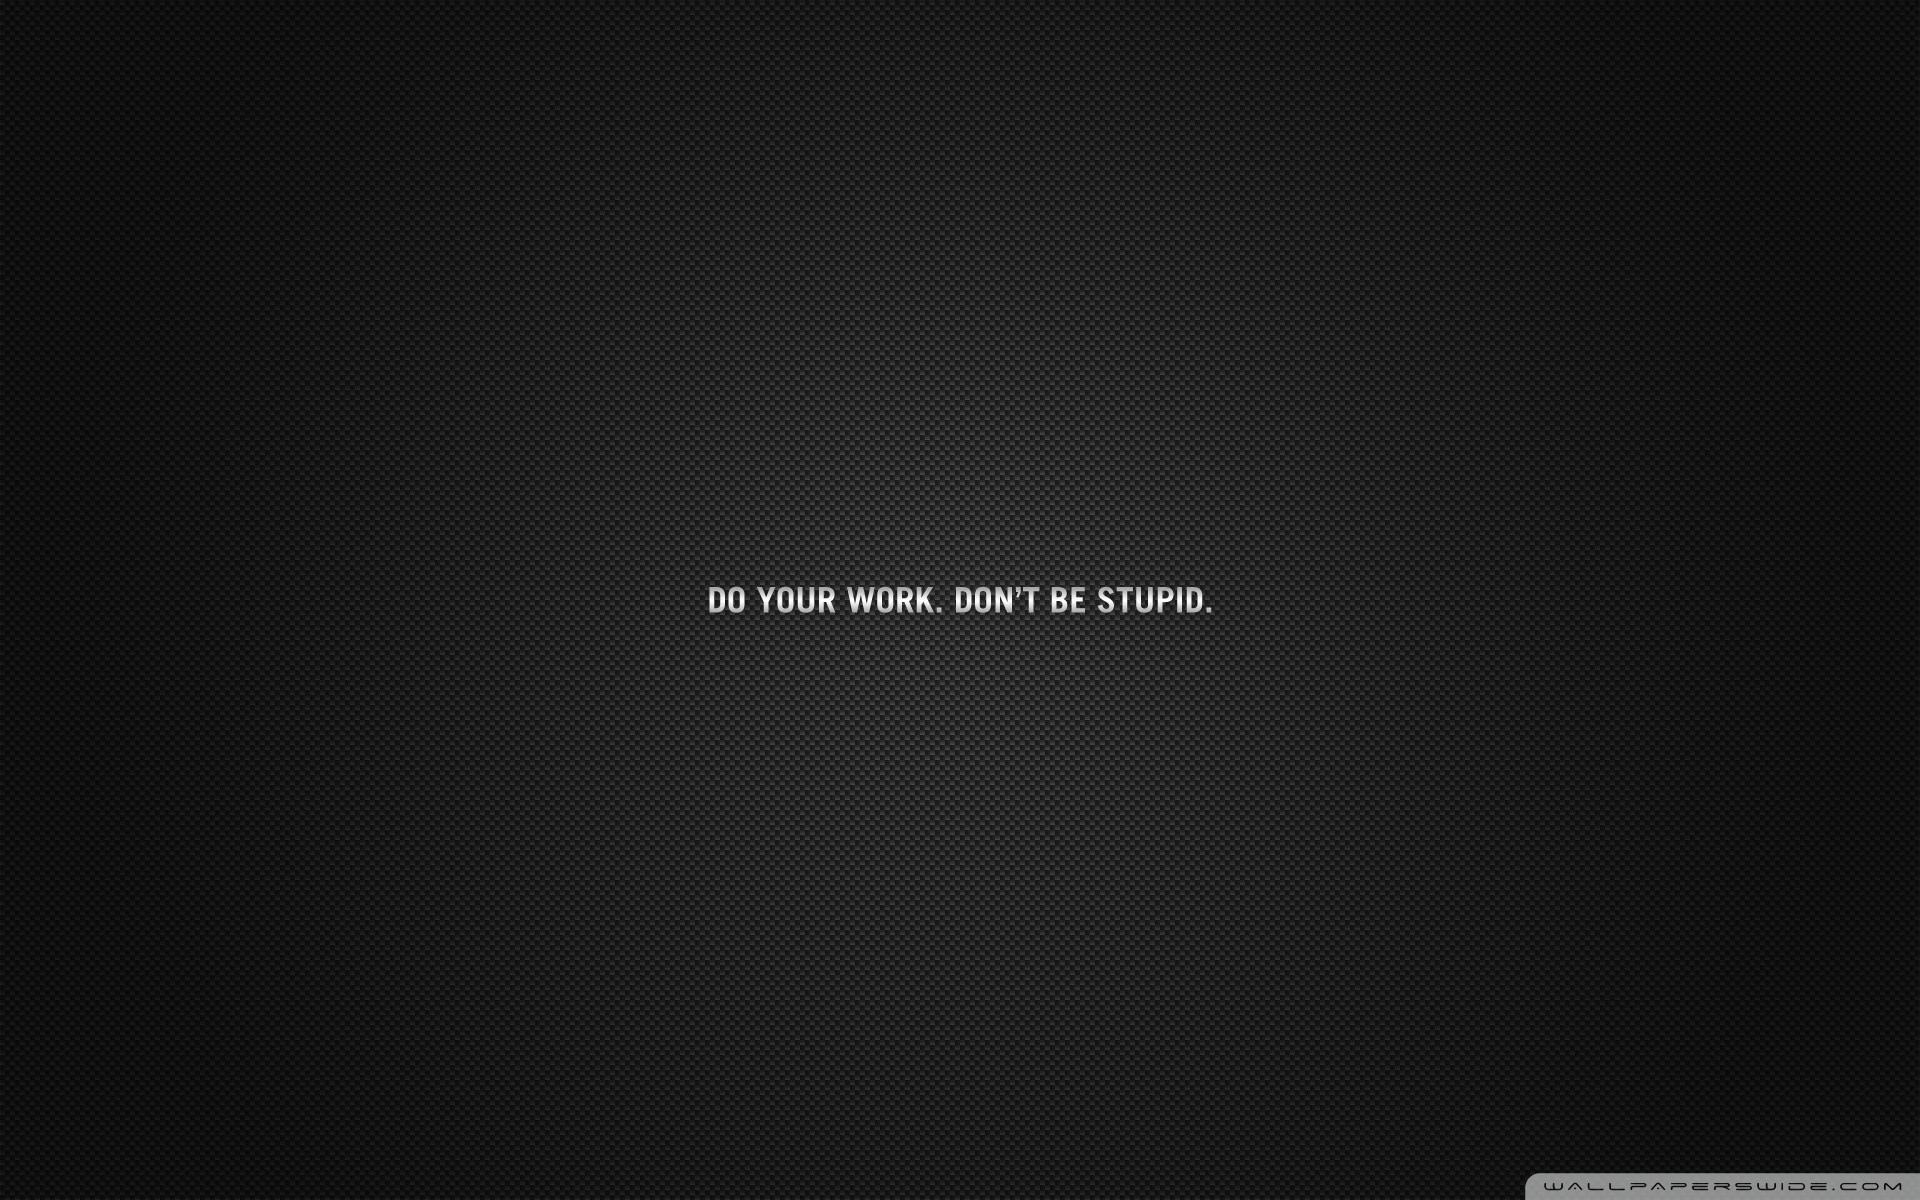 Amazing Motivation Wallpapers with Quotations for You